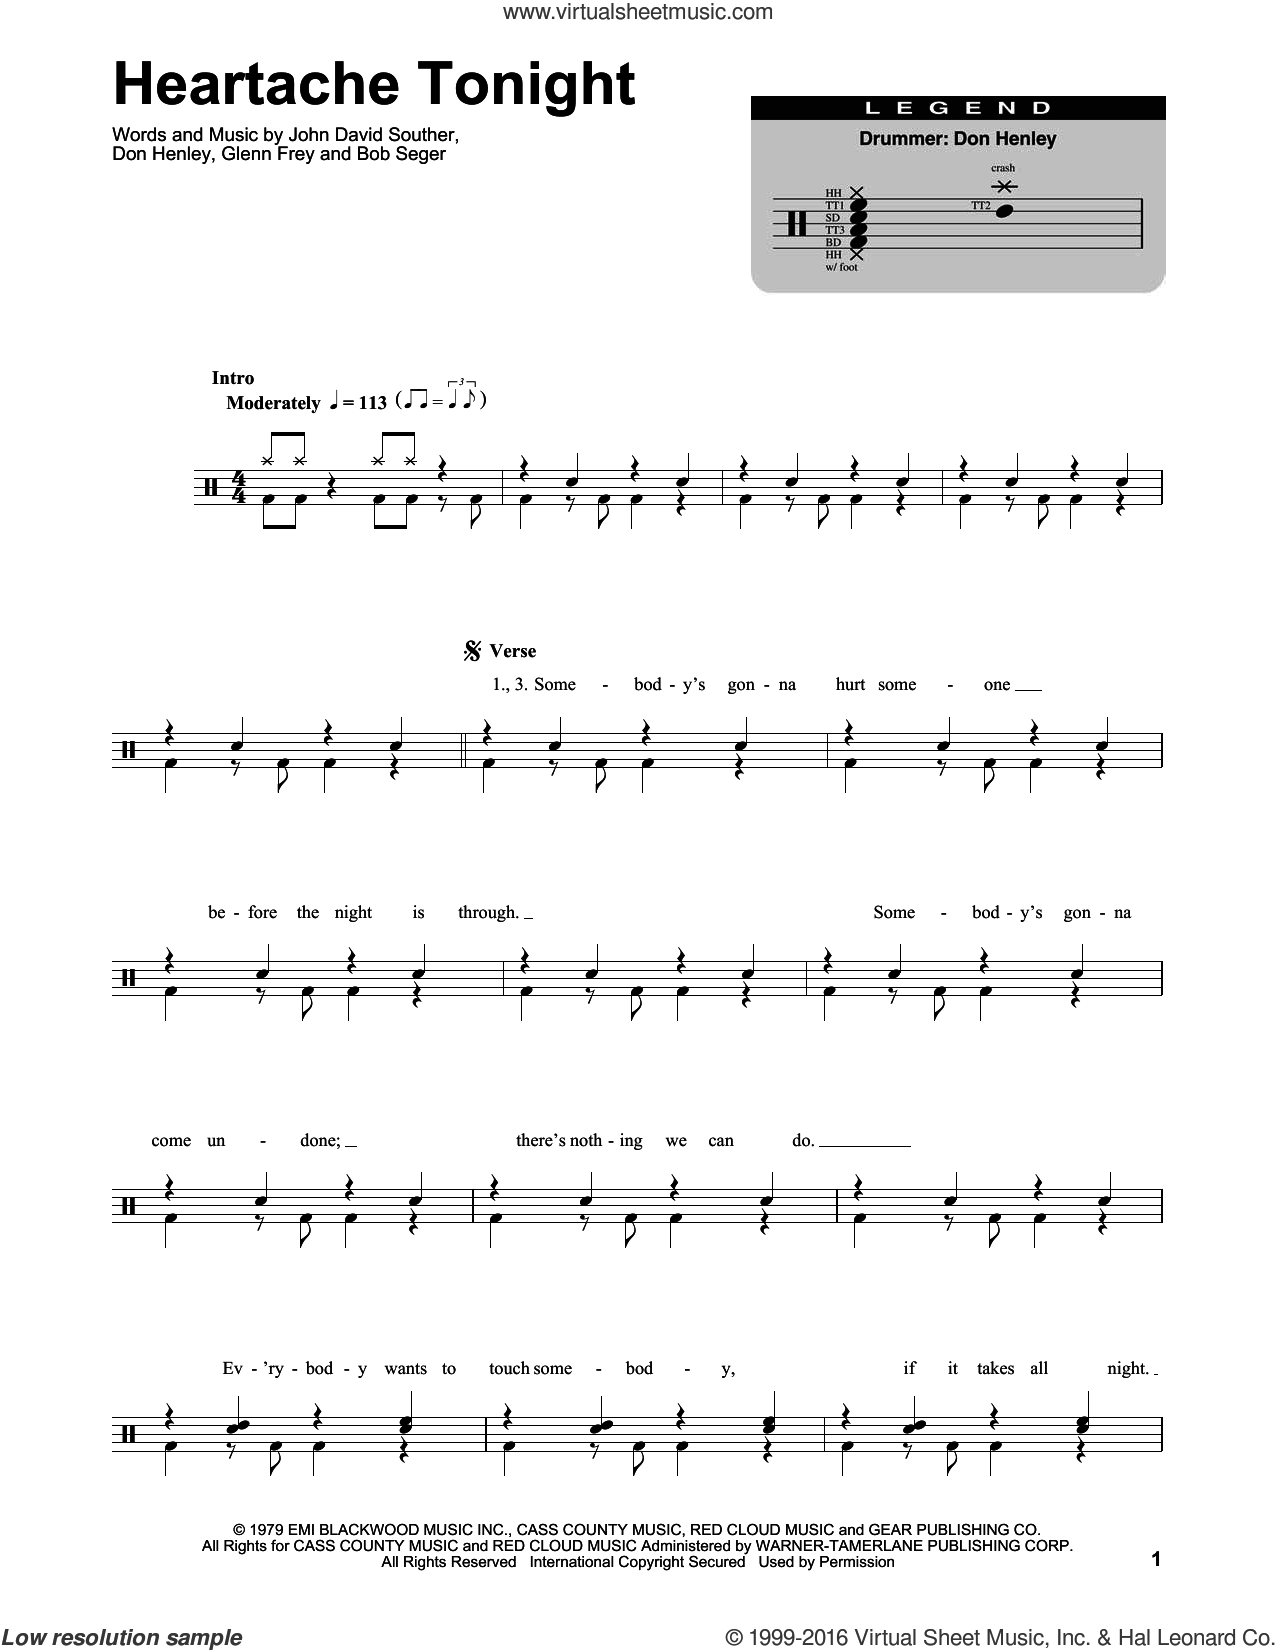 Heartache Tonight sheet music for drums by Eagles, Bob Seger, Don Henley, Glenn Frey and John David Souther, intermediate